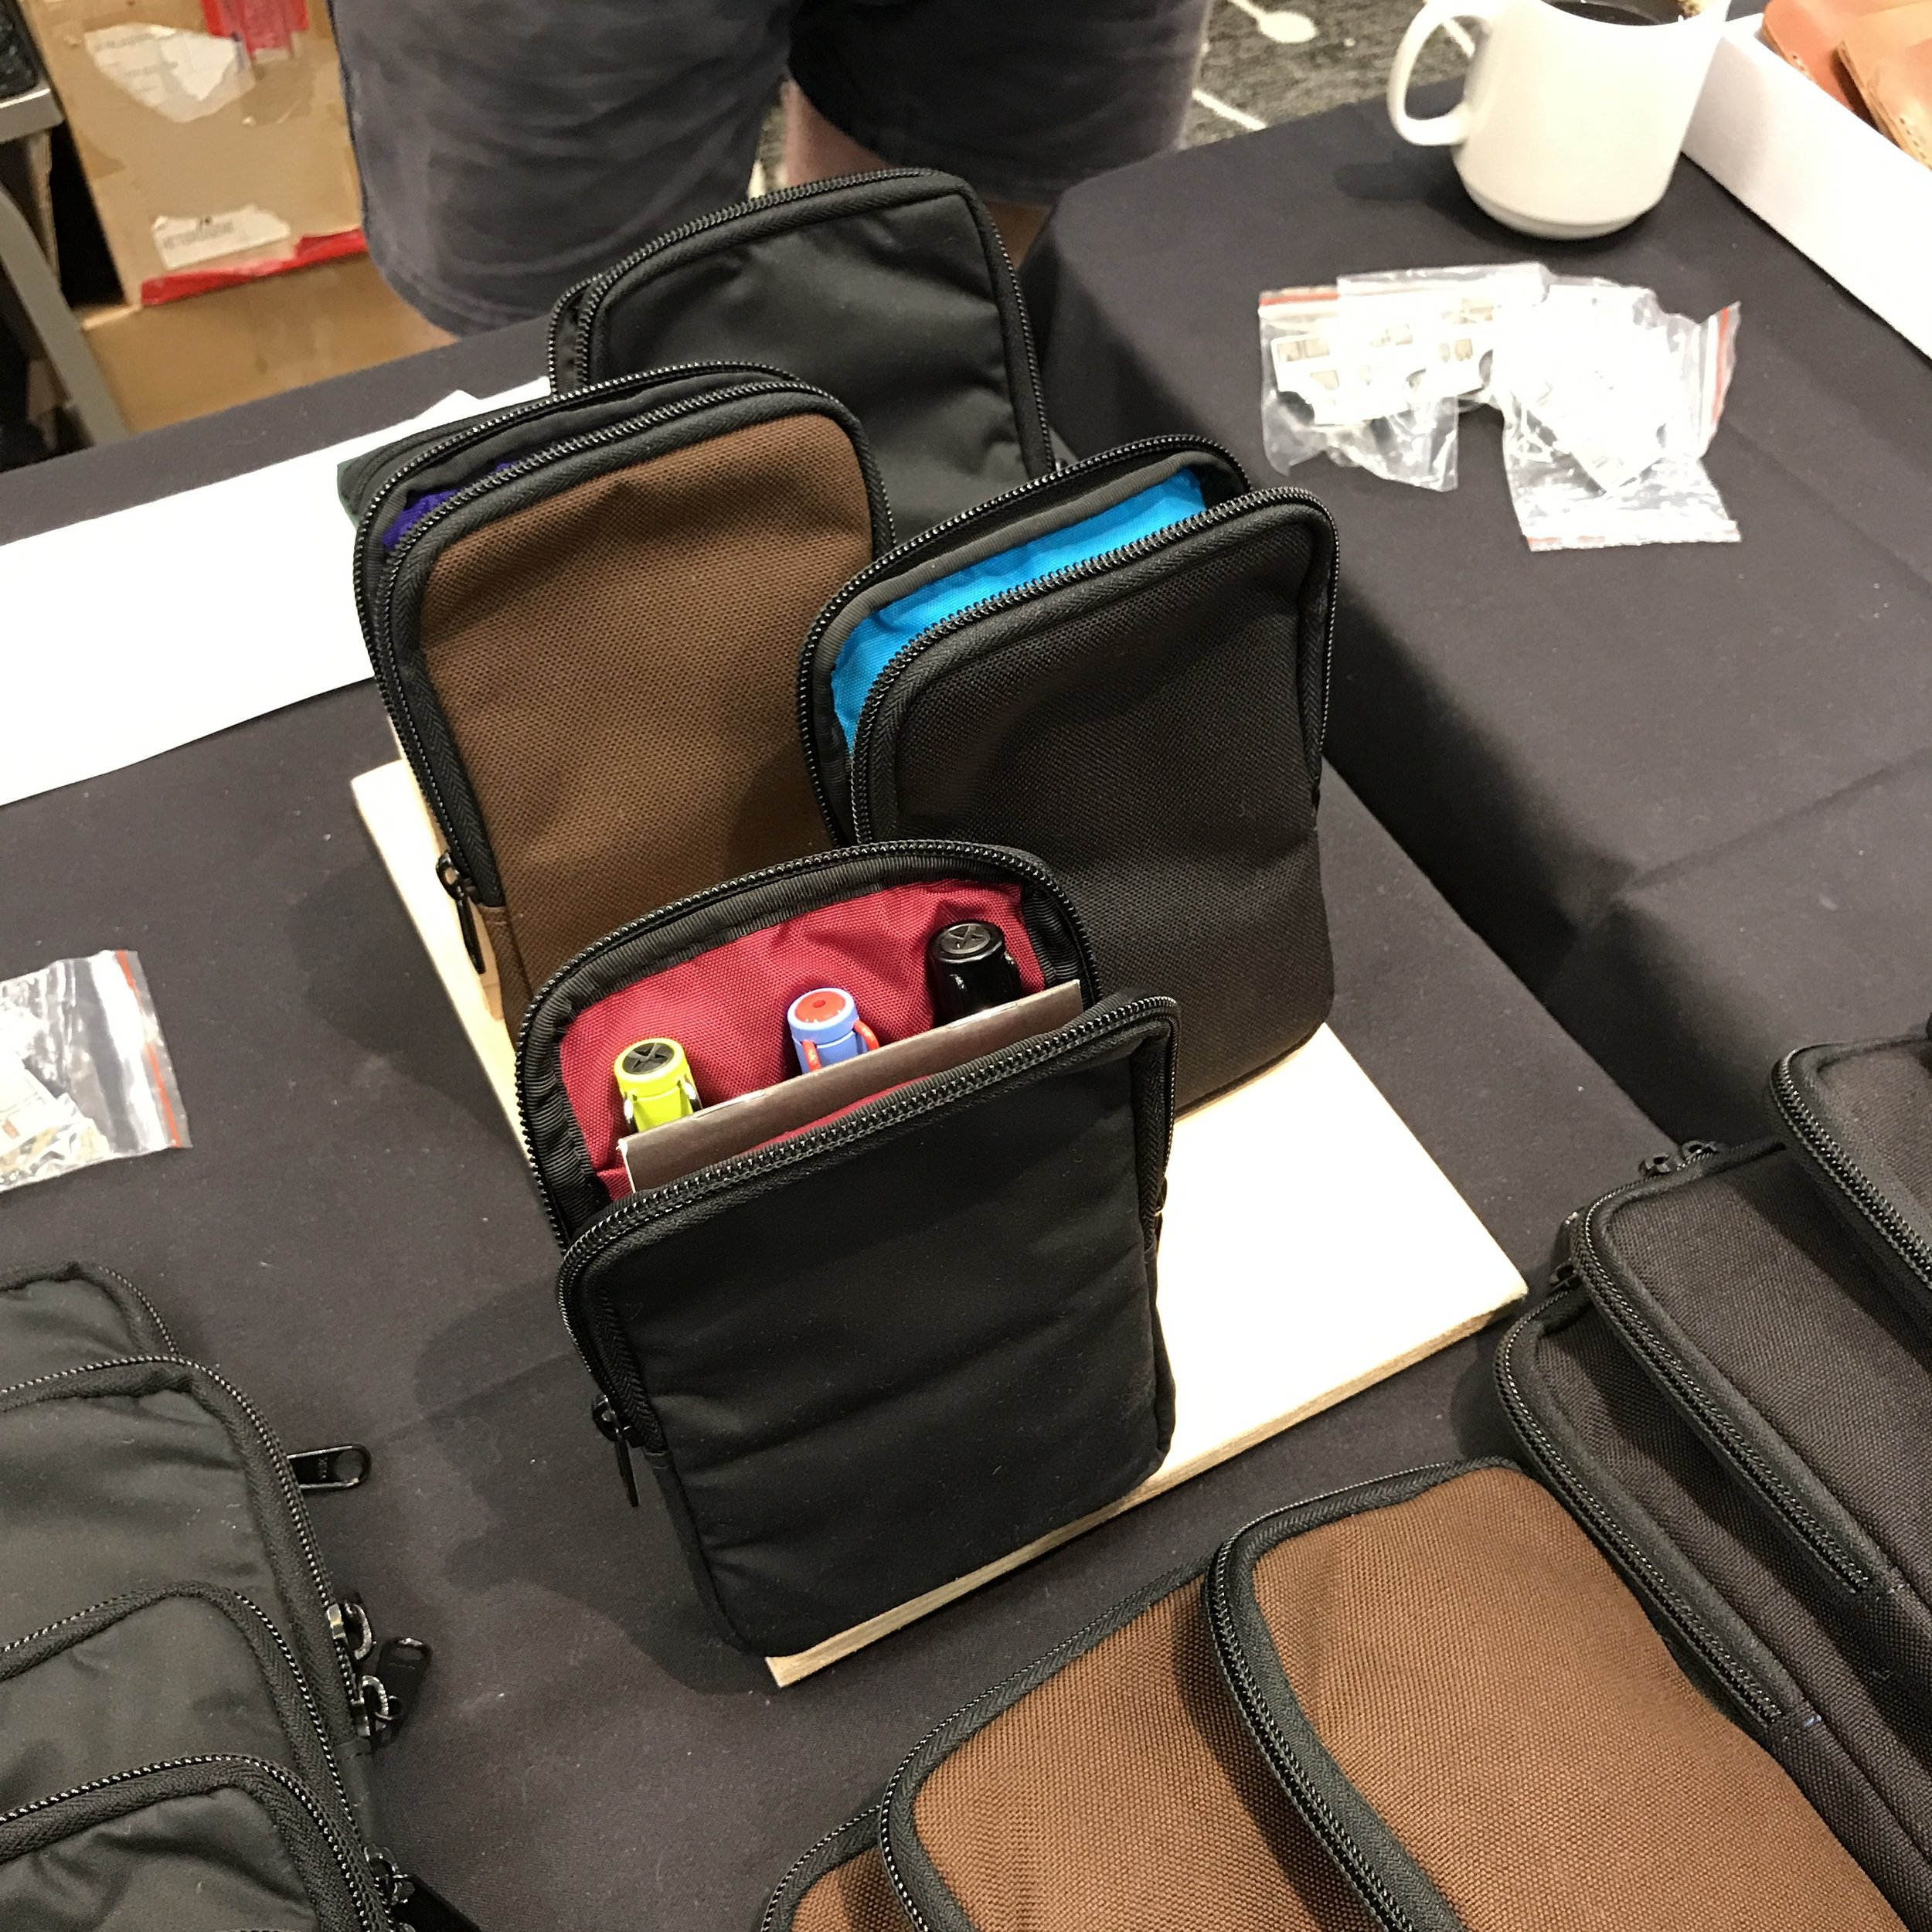 It wouldn't be the Atlanta Pen Show without Nock Co. show specials. Check out the show special Sinclair, featuring black waxed canvas exterior with red interior. I grabbed that right away!